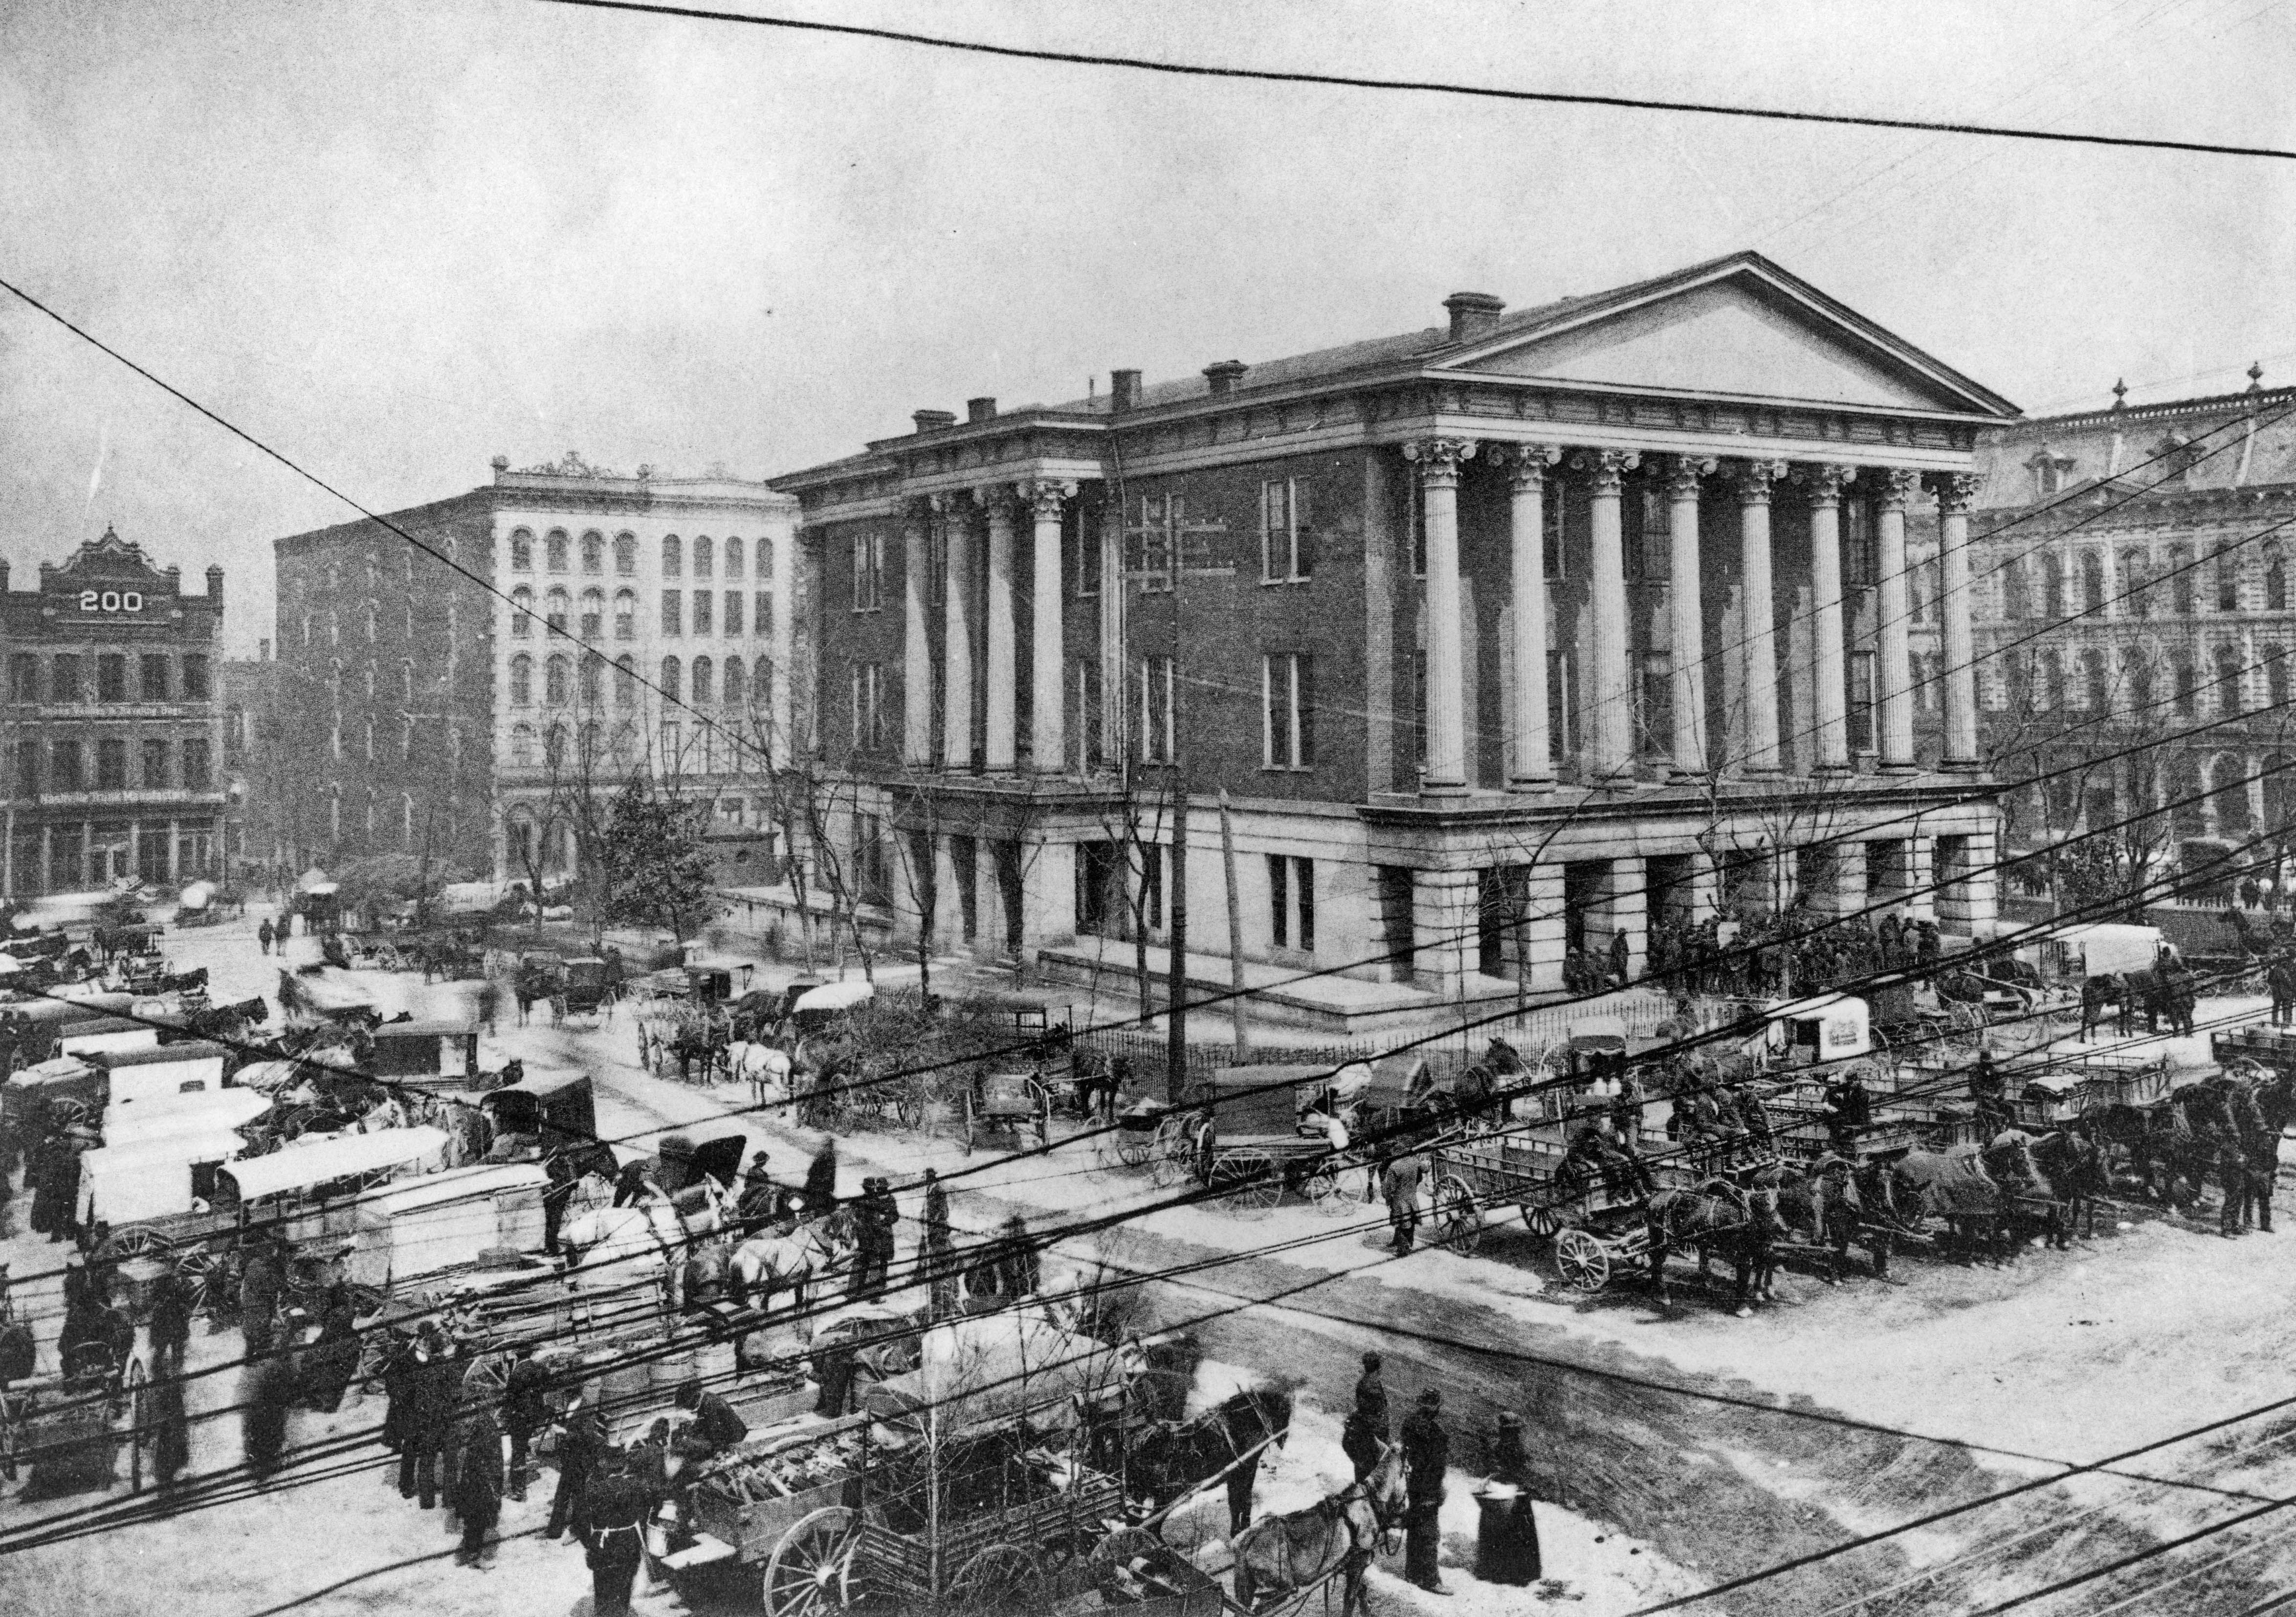 1896 Nashville Tn At The Court House And Market Square